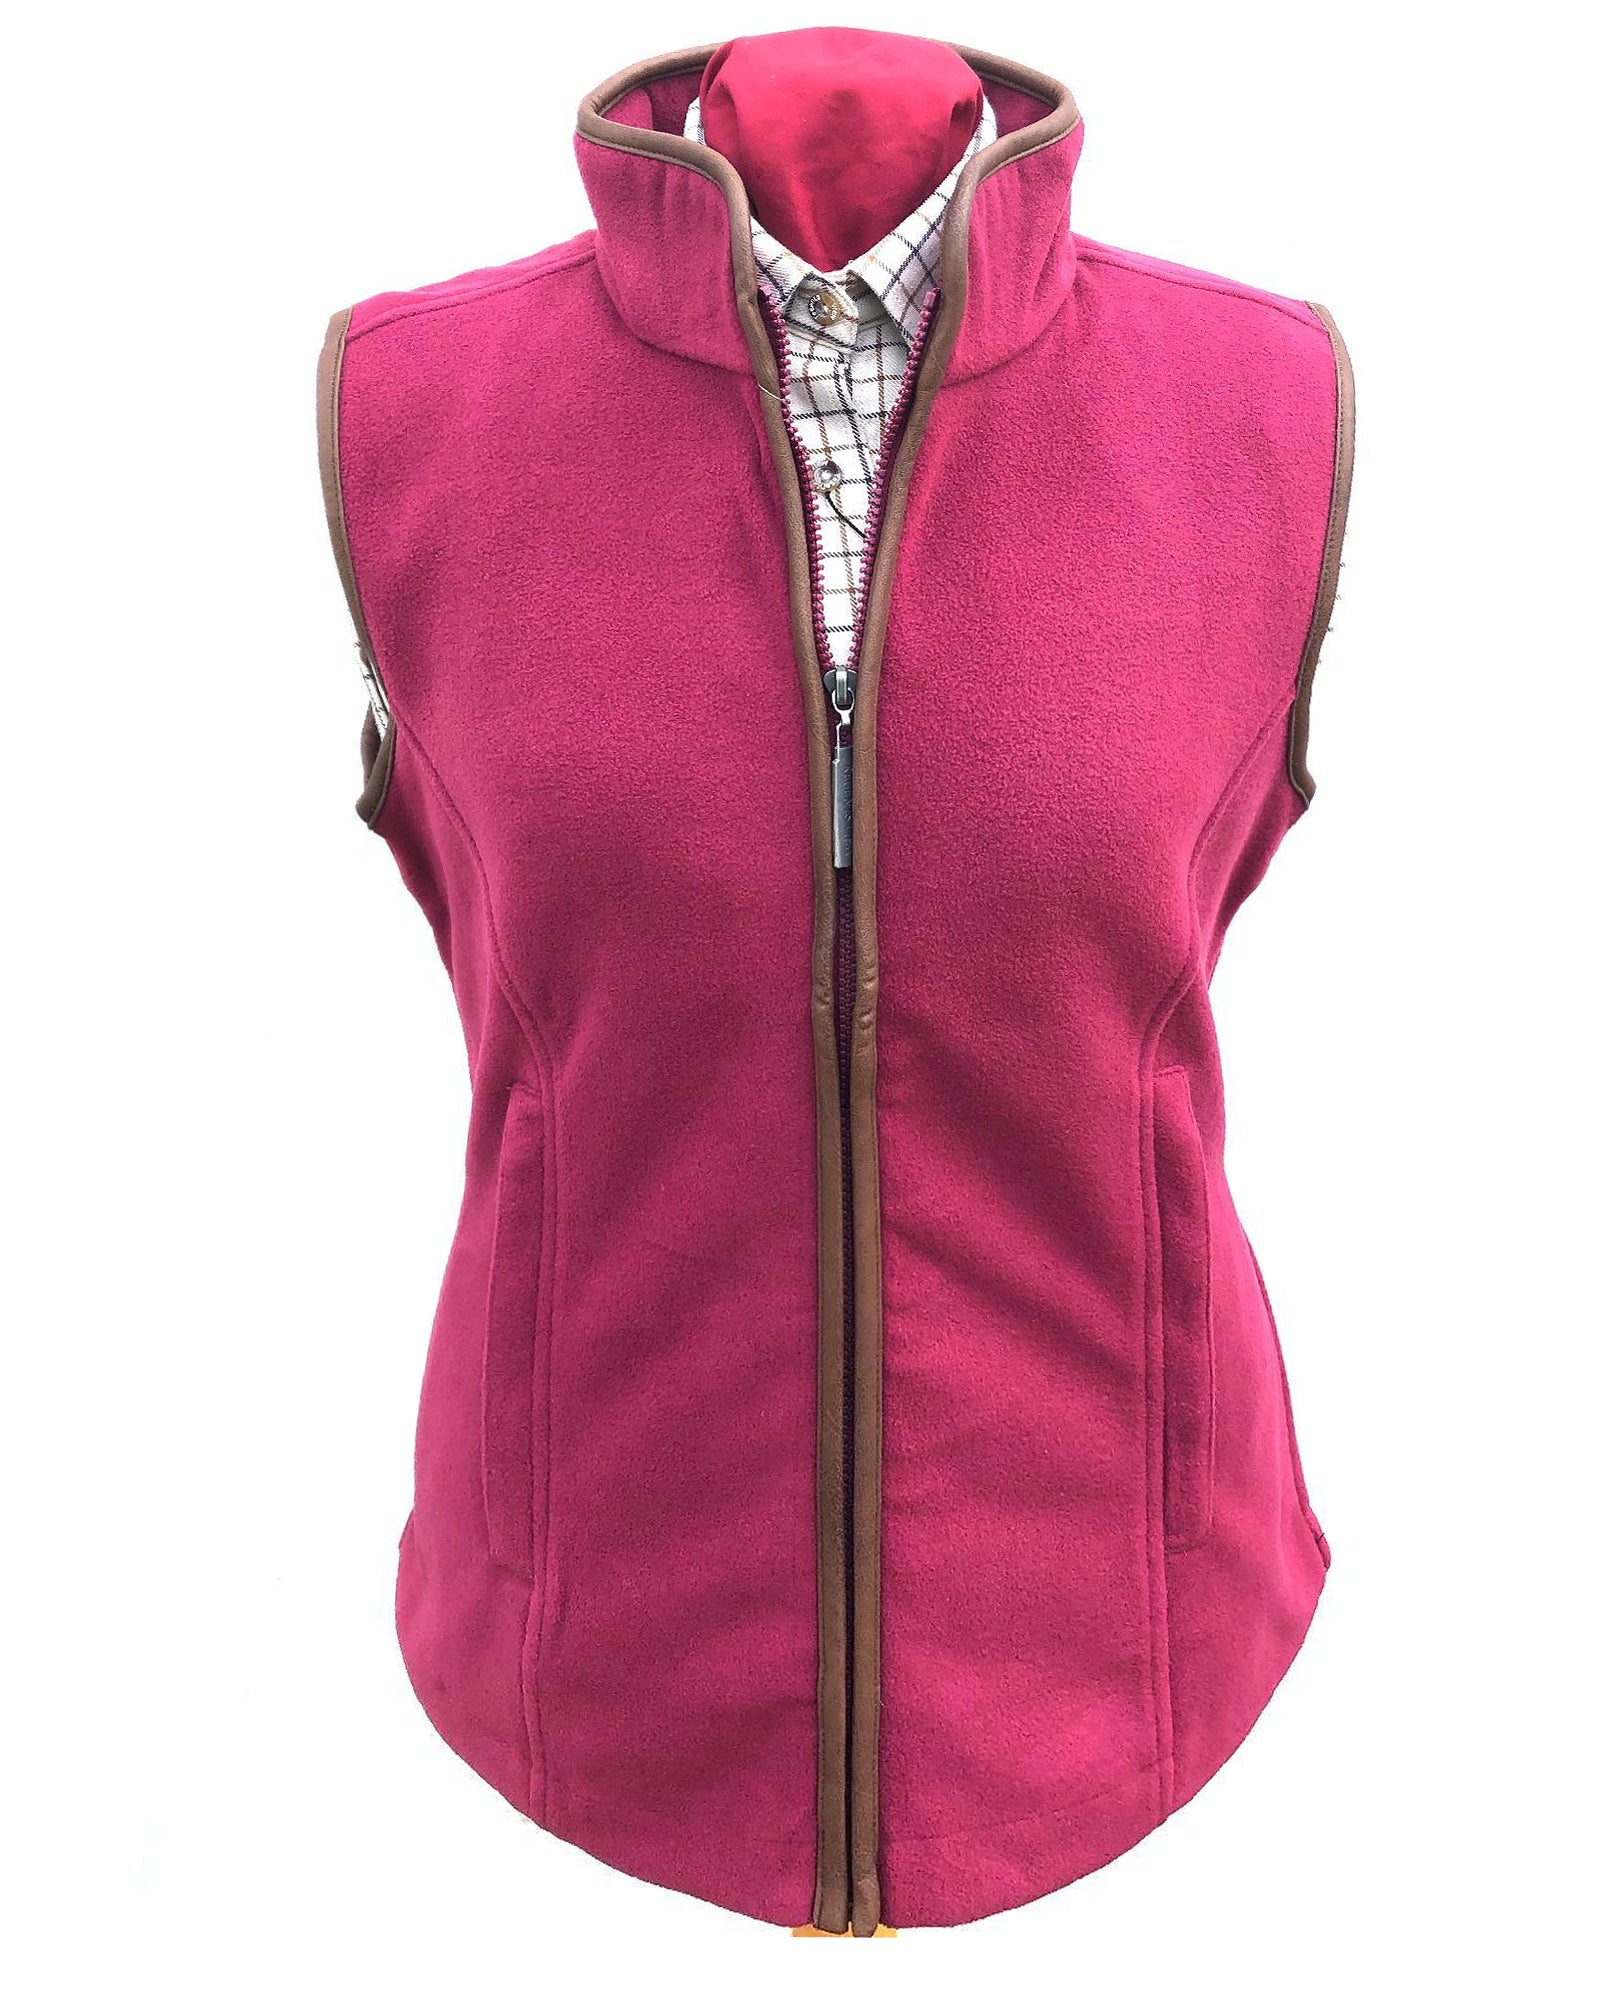 Regents View Women Fleece Bodywarmer - pink